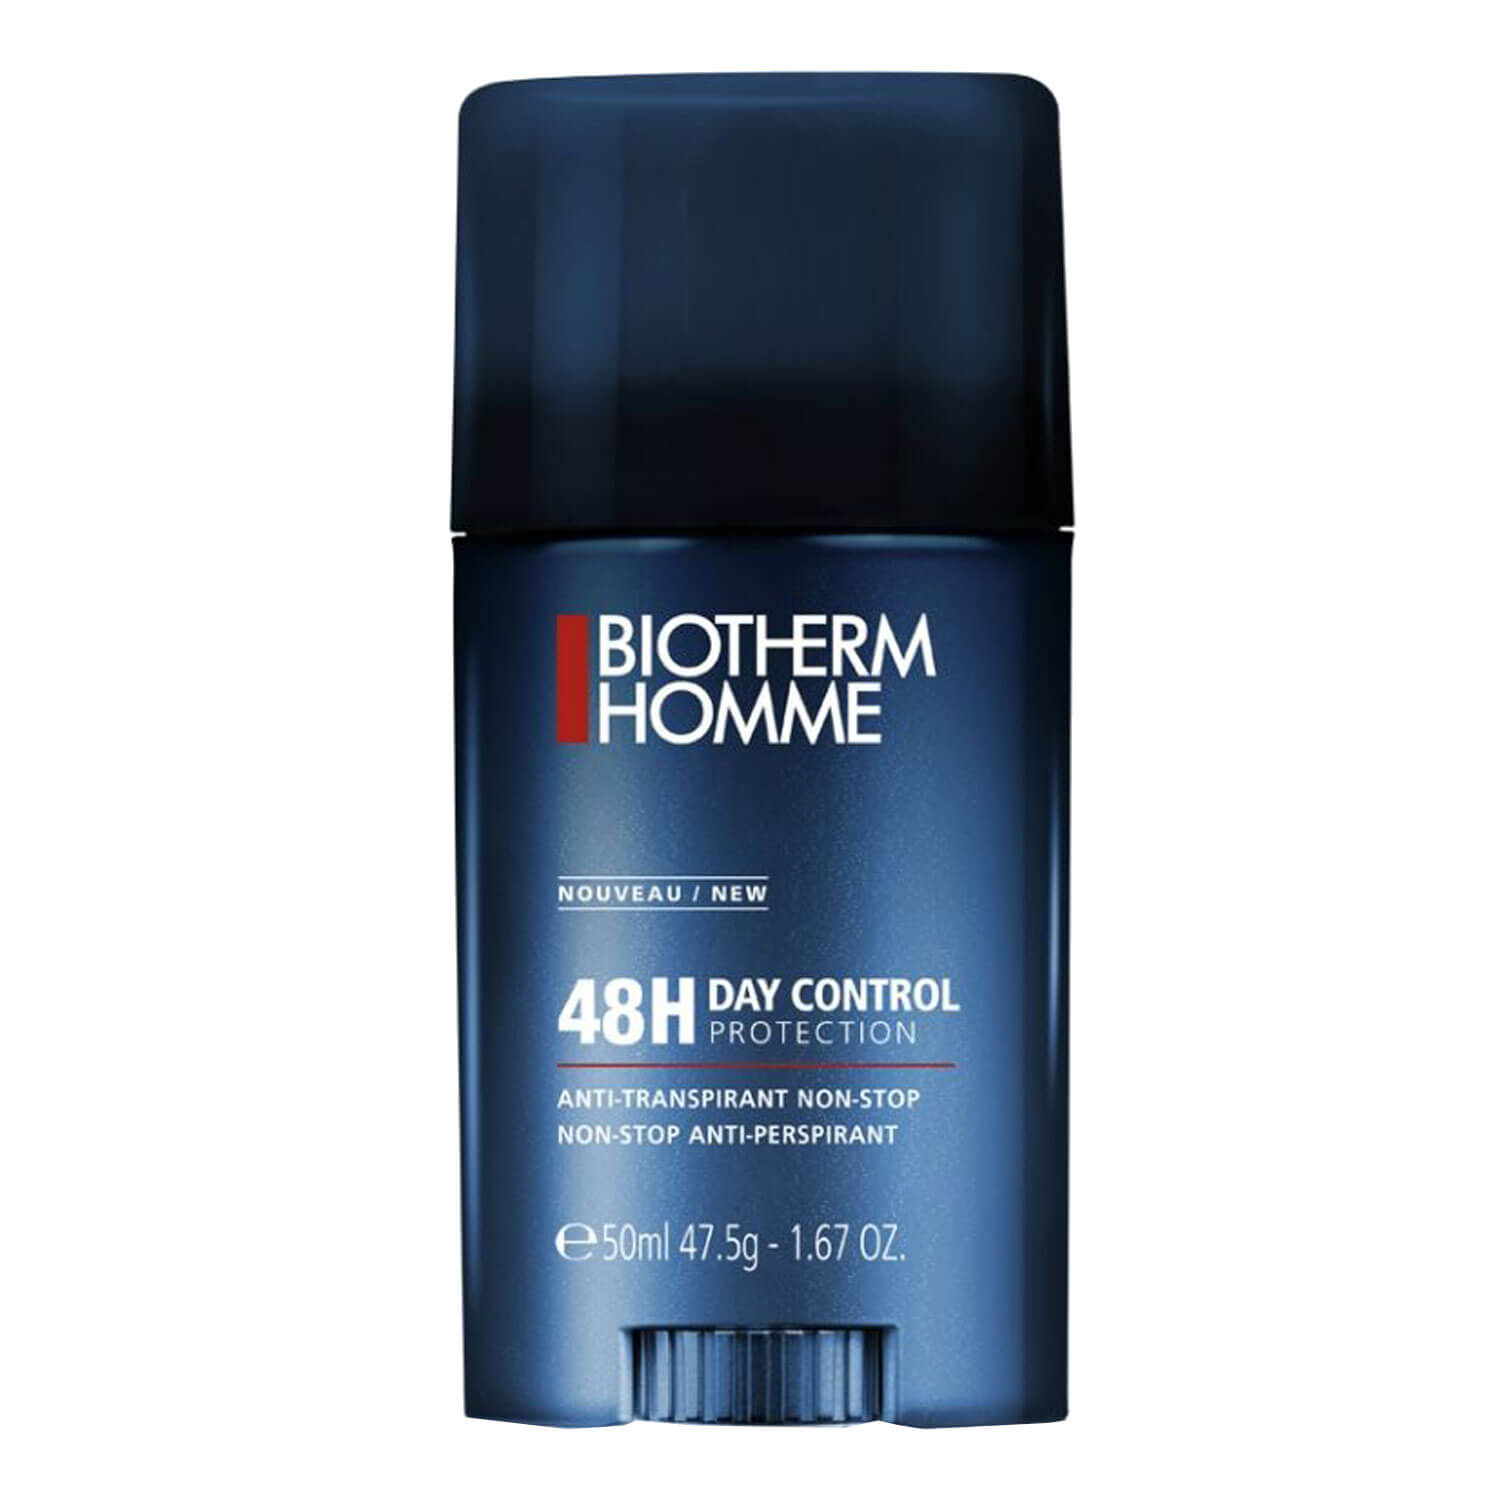 Biotherm Homme - Day Control 48H Extreme Protection Stick